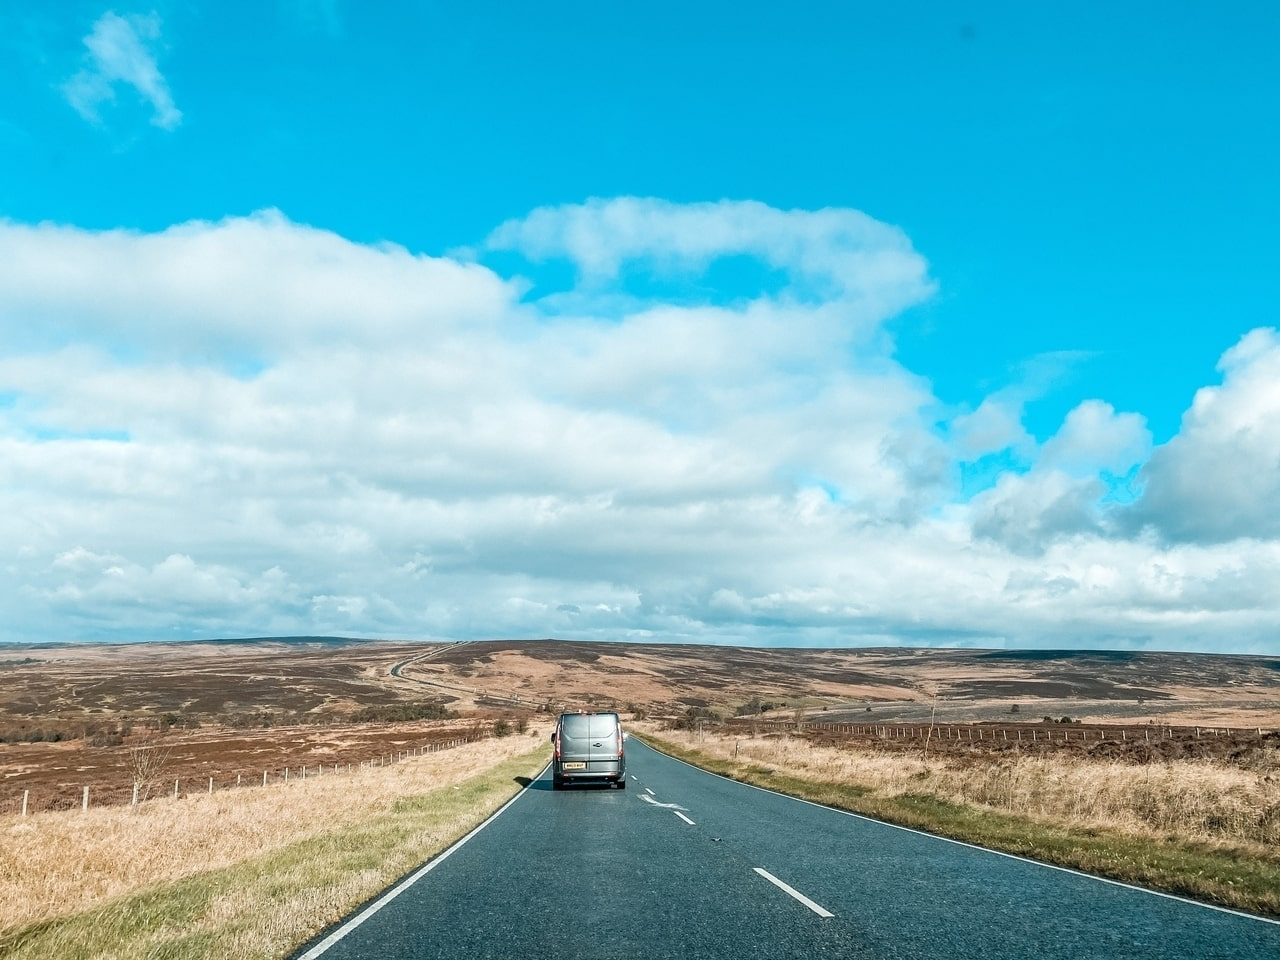 Driving over the North Yorkshire Moors in England